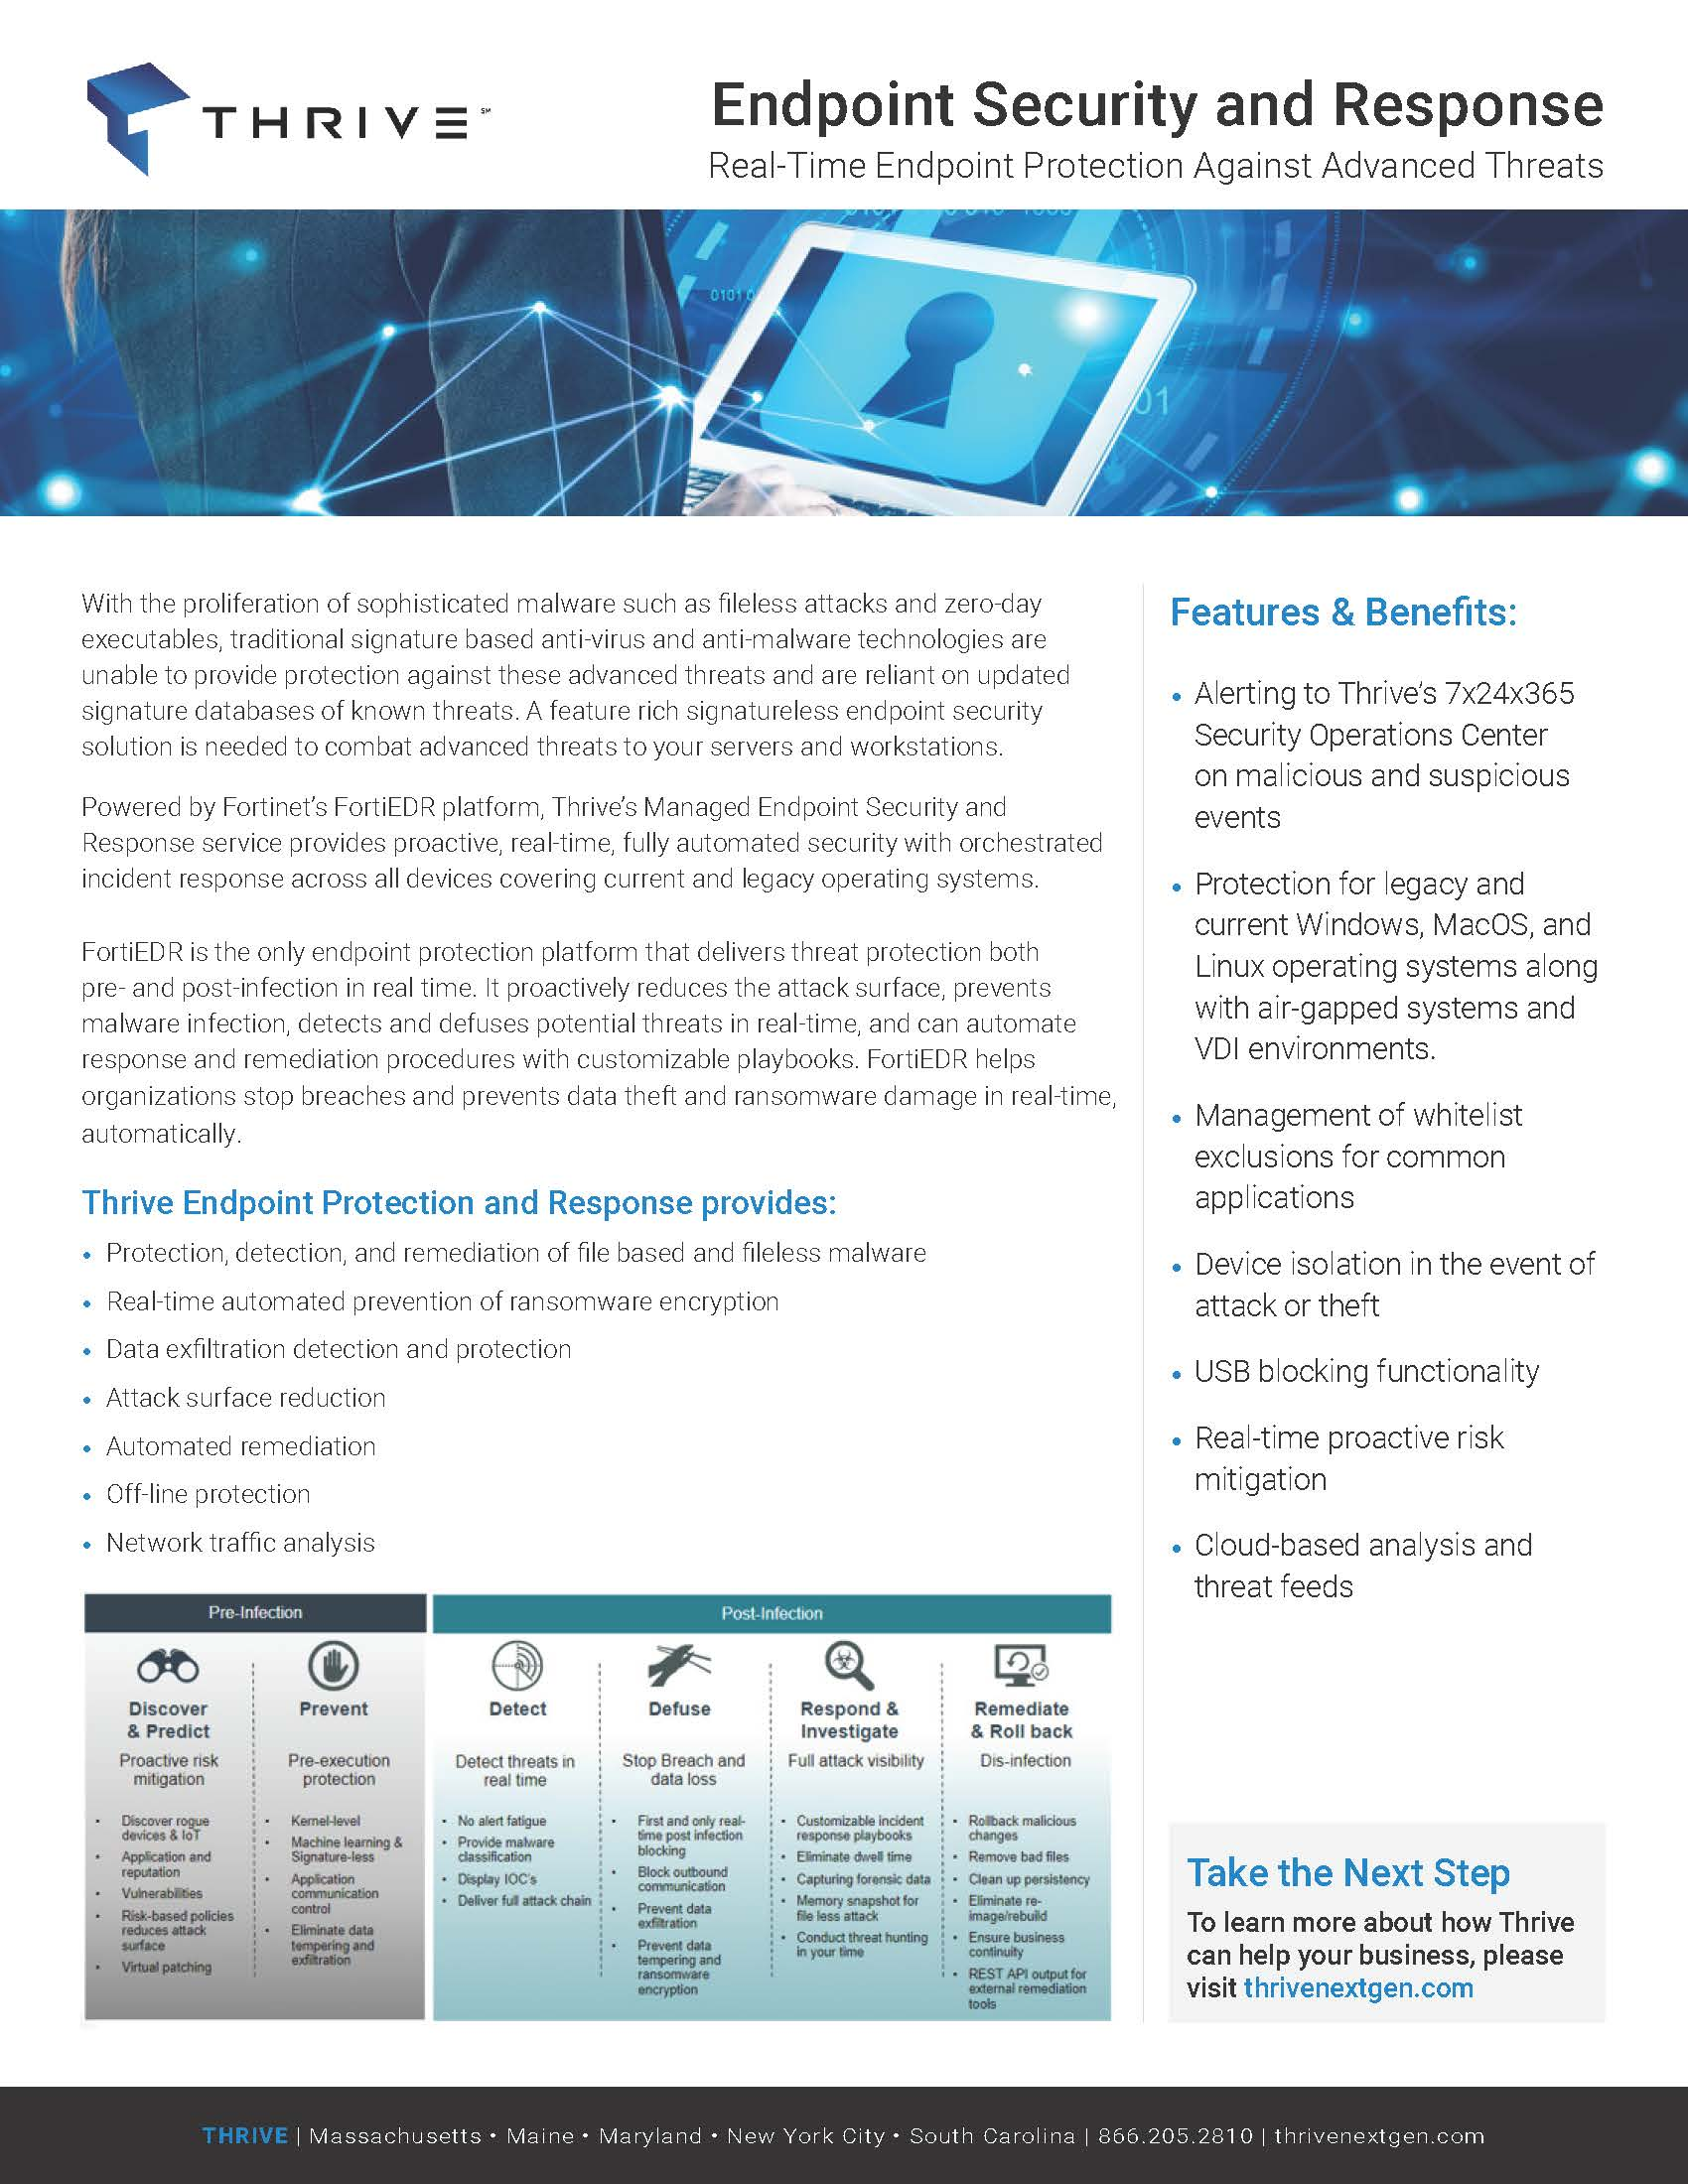 Thrive_Endpoint Security and Response_One Pager-FINAL073020